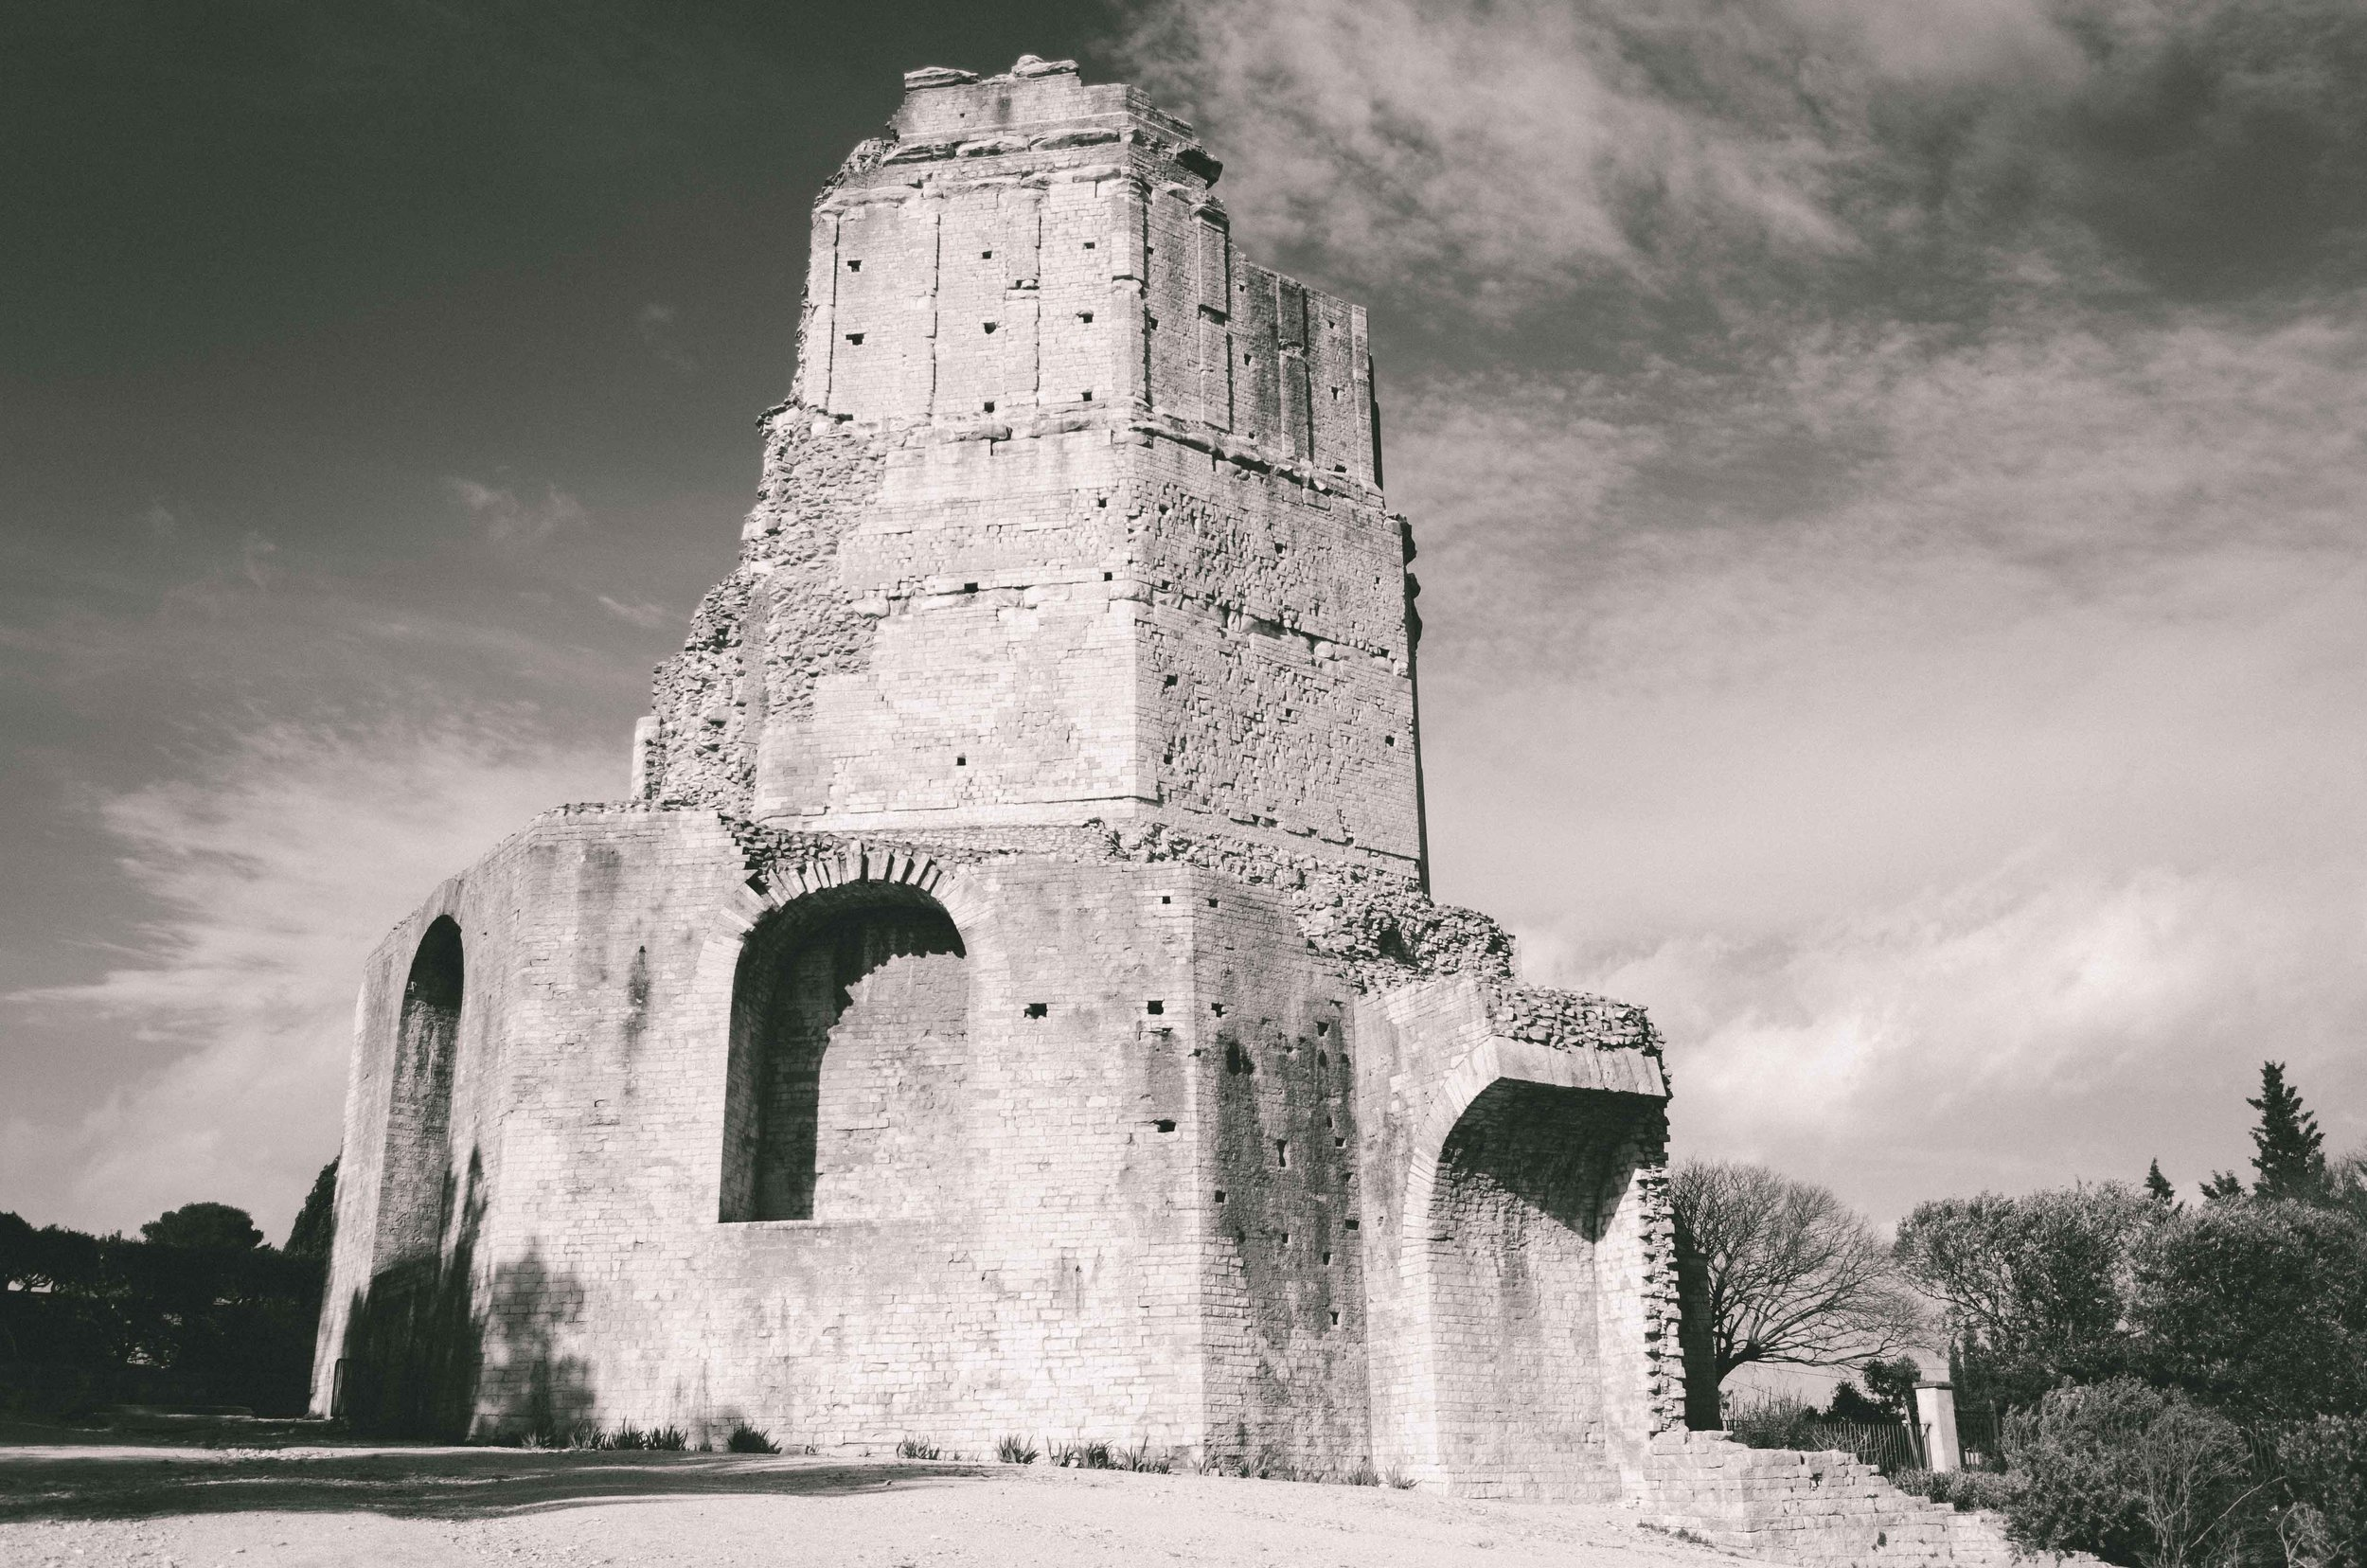 march 6 // The Magne Tower